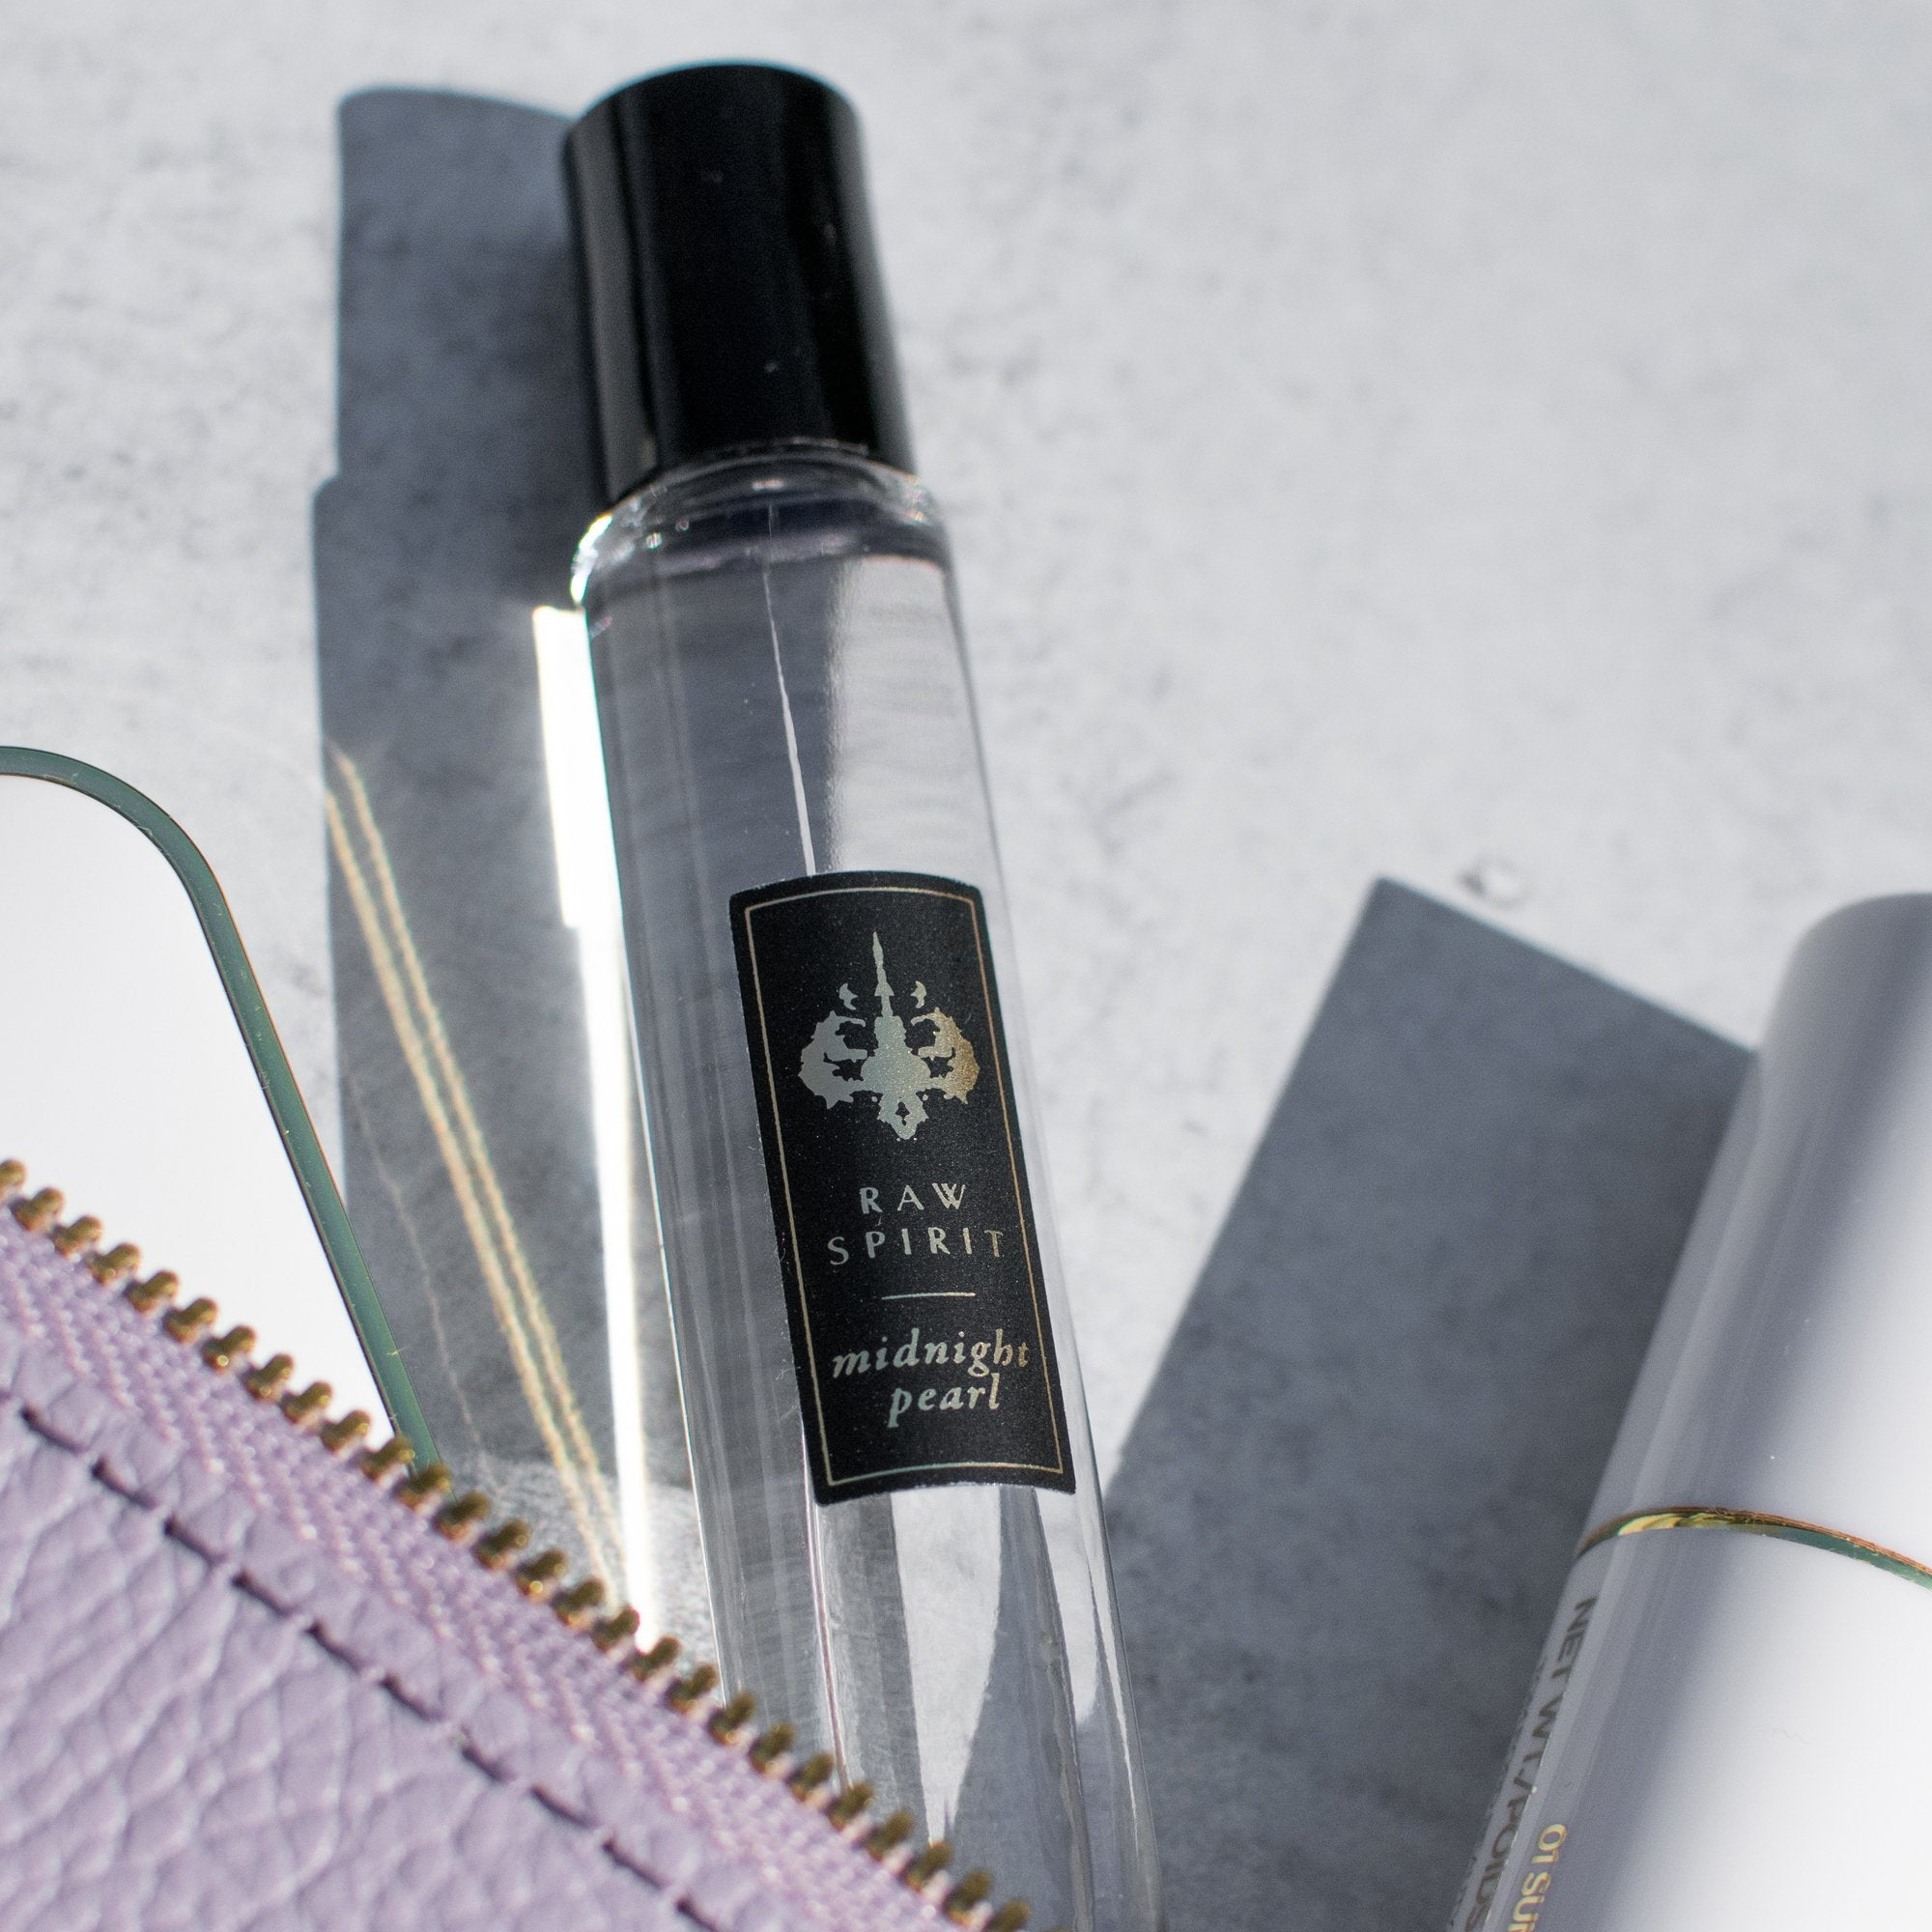 Raw Spirit Midnight Pearl perfume is a floral fragrance with notes of gardenia, Frangipanni, Ylang Ylang, Coconut, Clove, Cinnamon, and the real essence of Pearl.